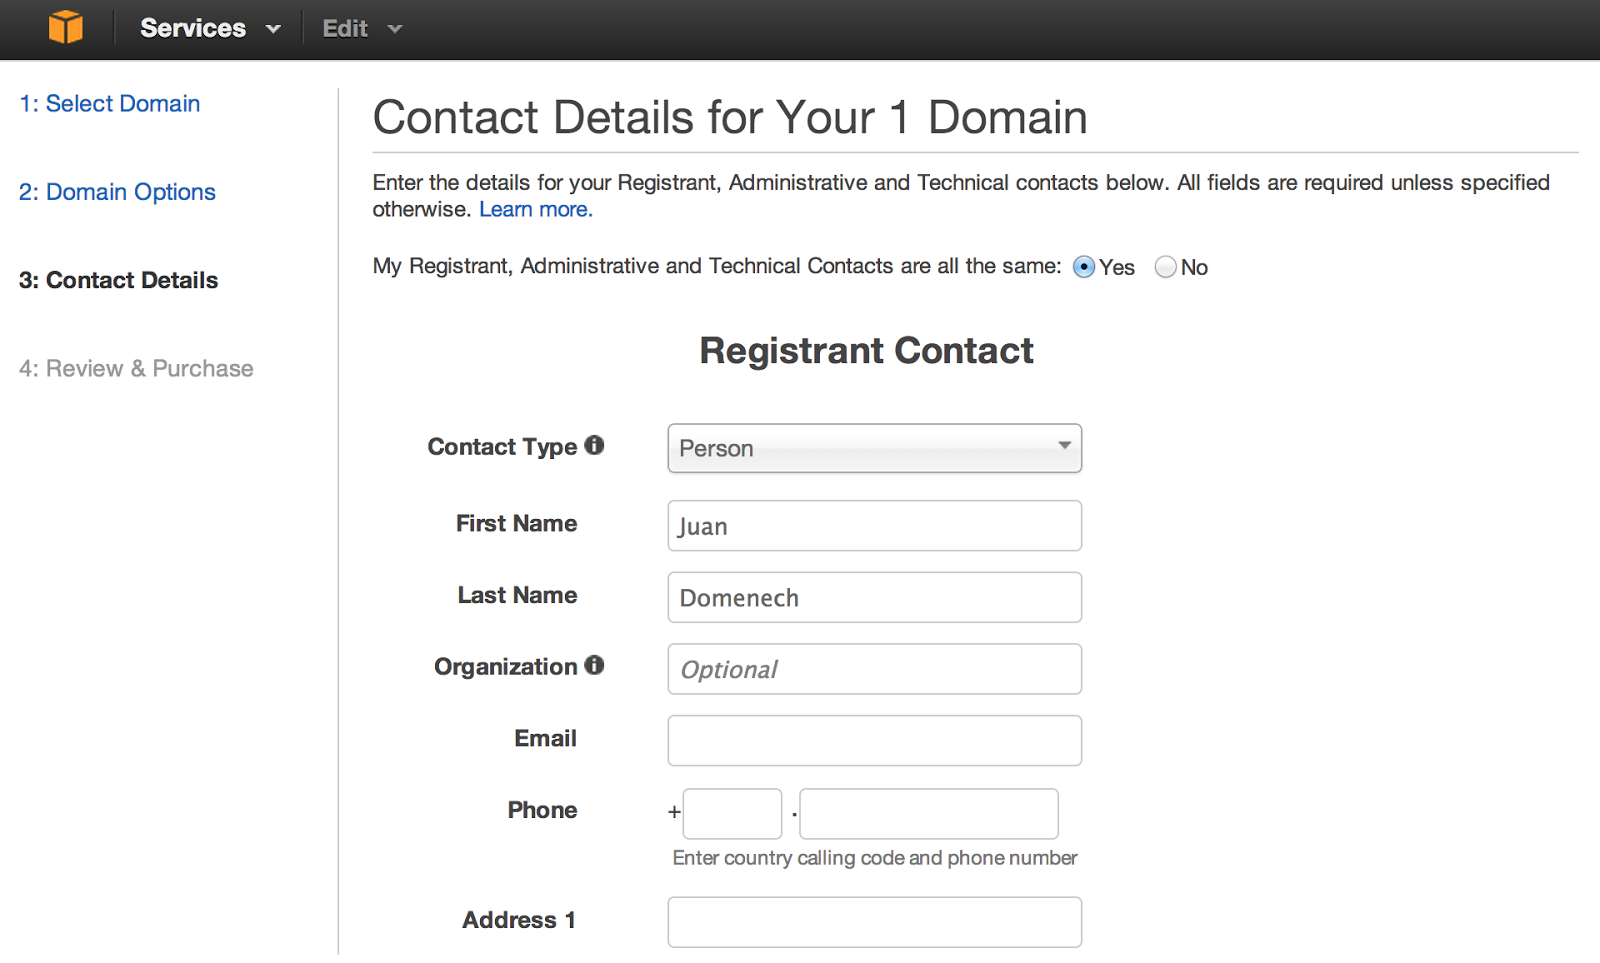 blog-domenech-org-transfer-internet-domain-to-aws-route-53-step-5